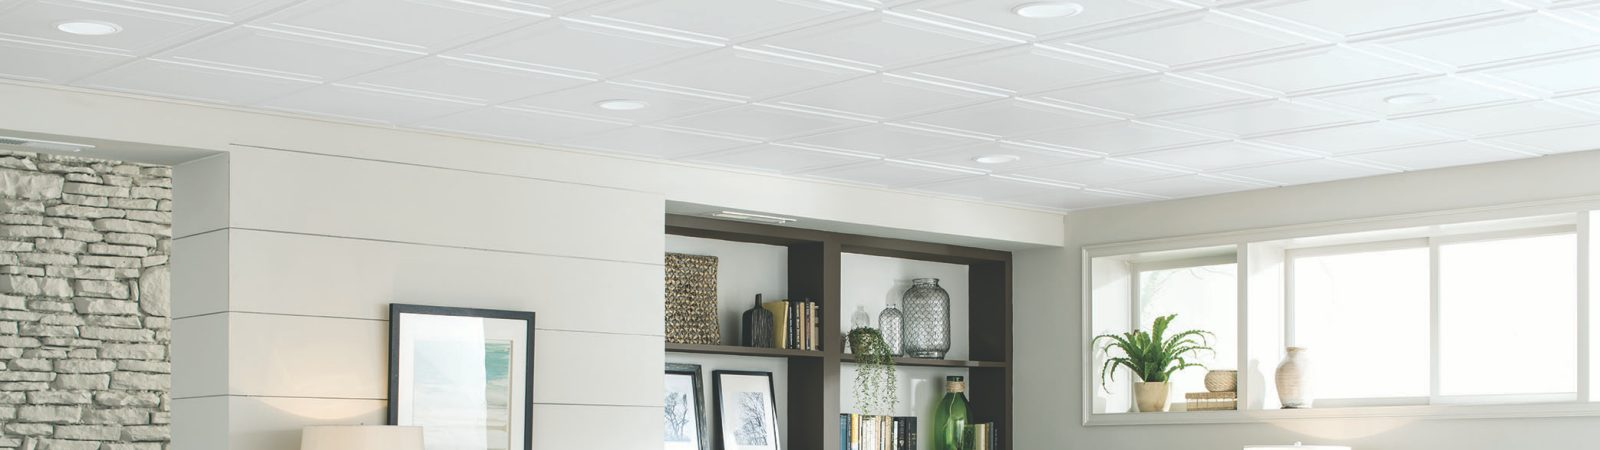 Decorative Suspended Ceiling Armstrong Ceilings Residential